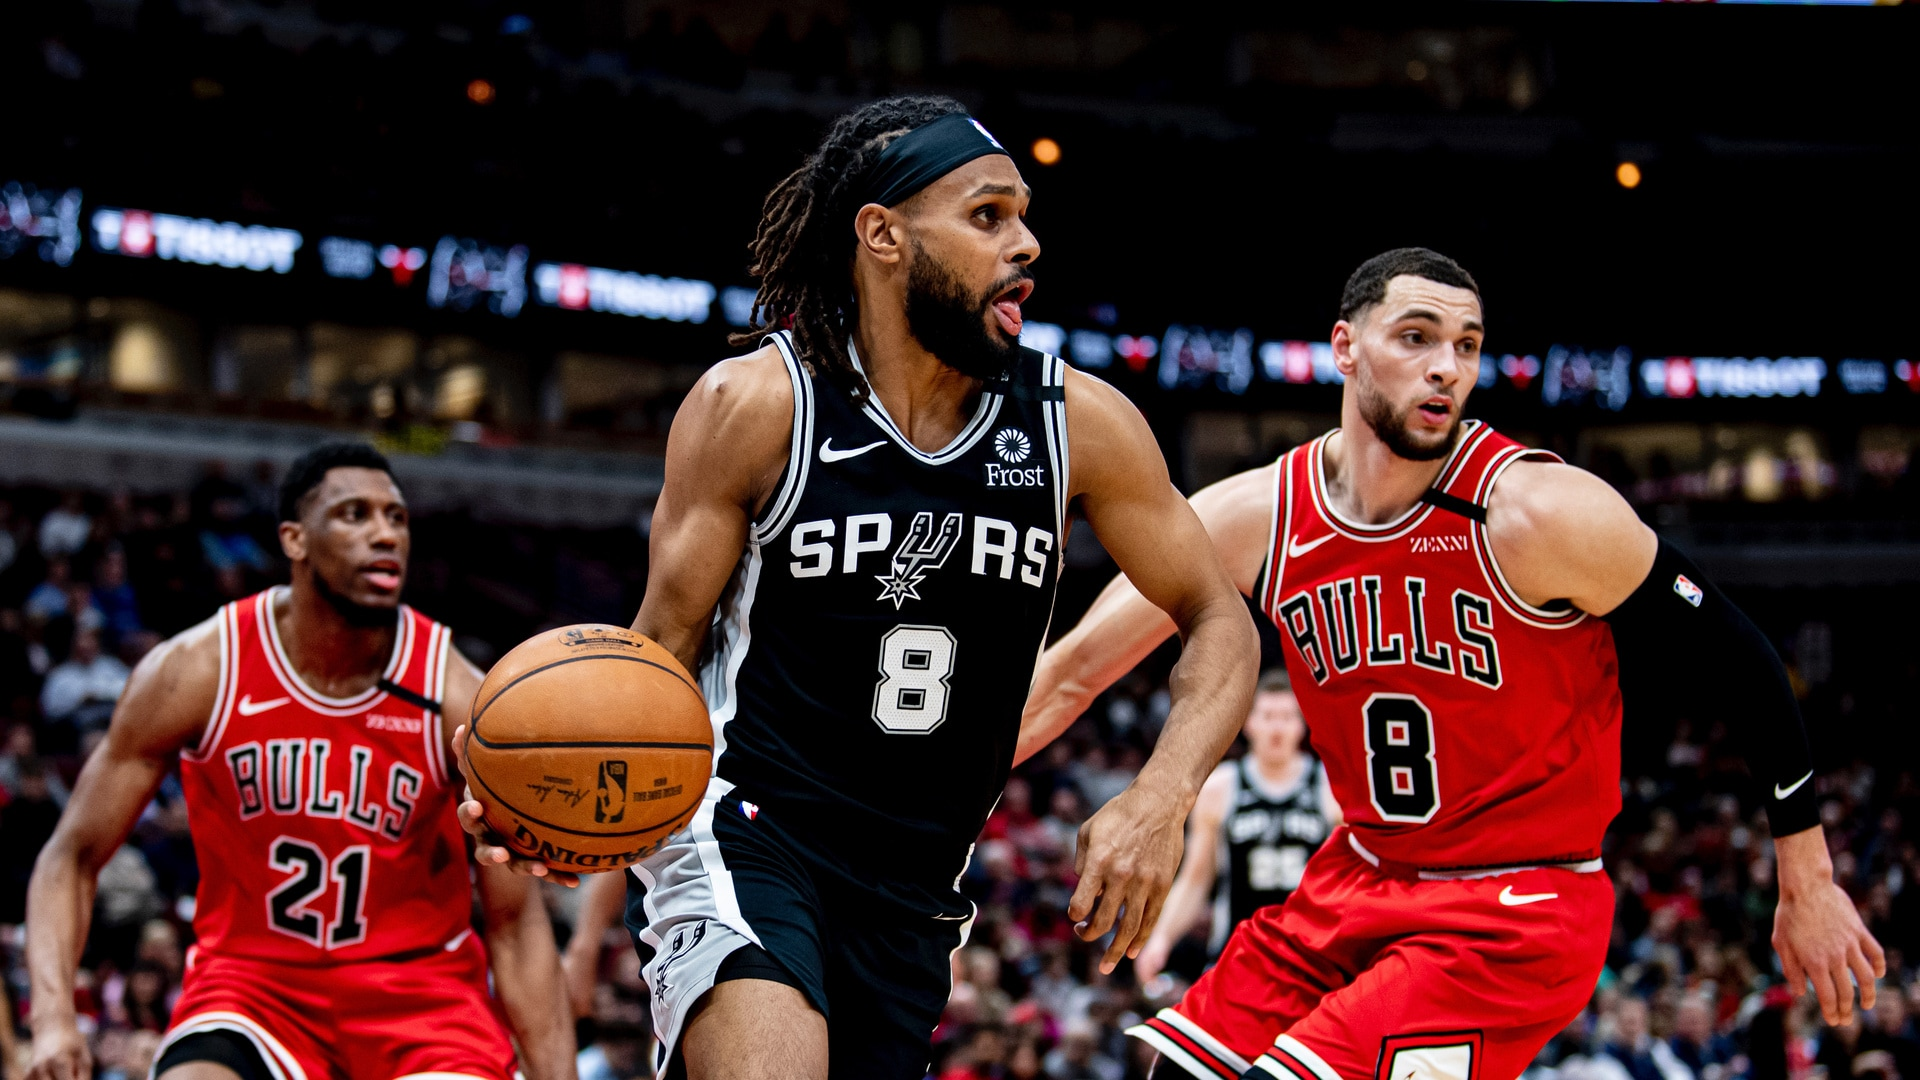 Highlights: Spurs vs. Bulls 1/27